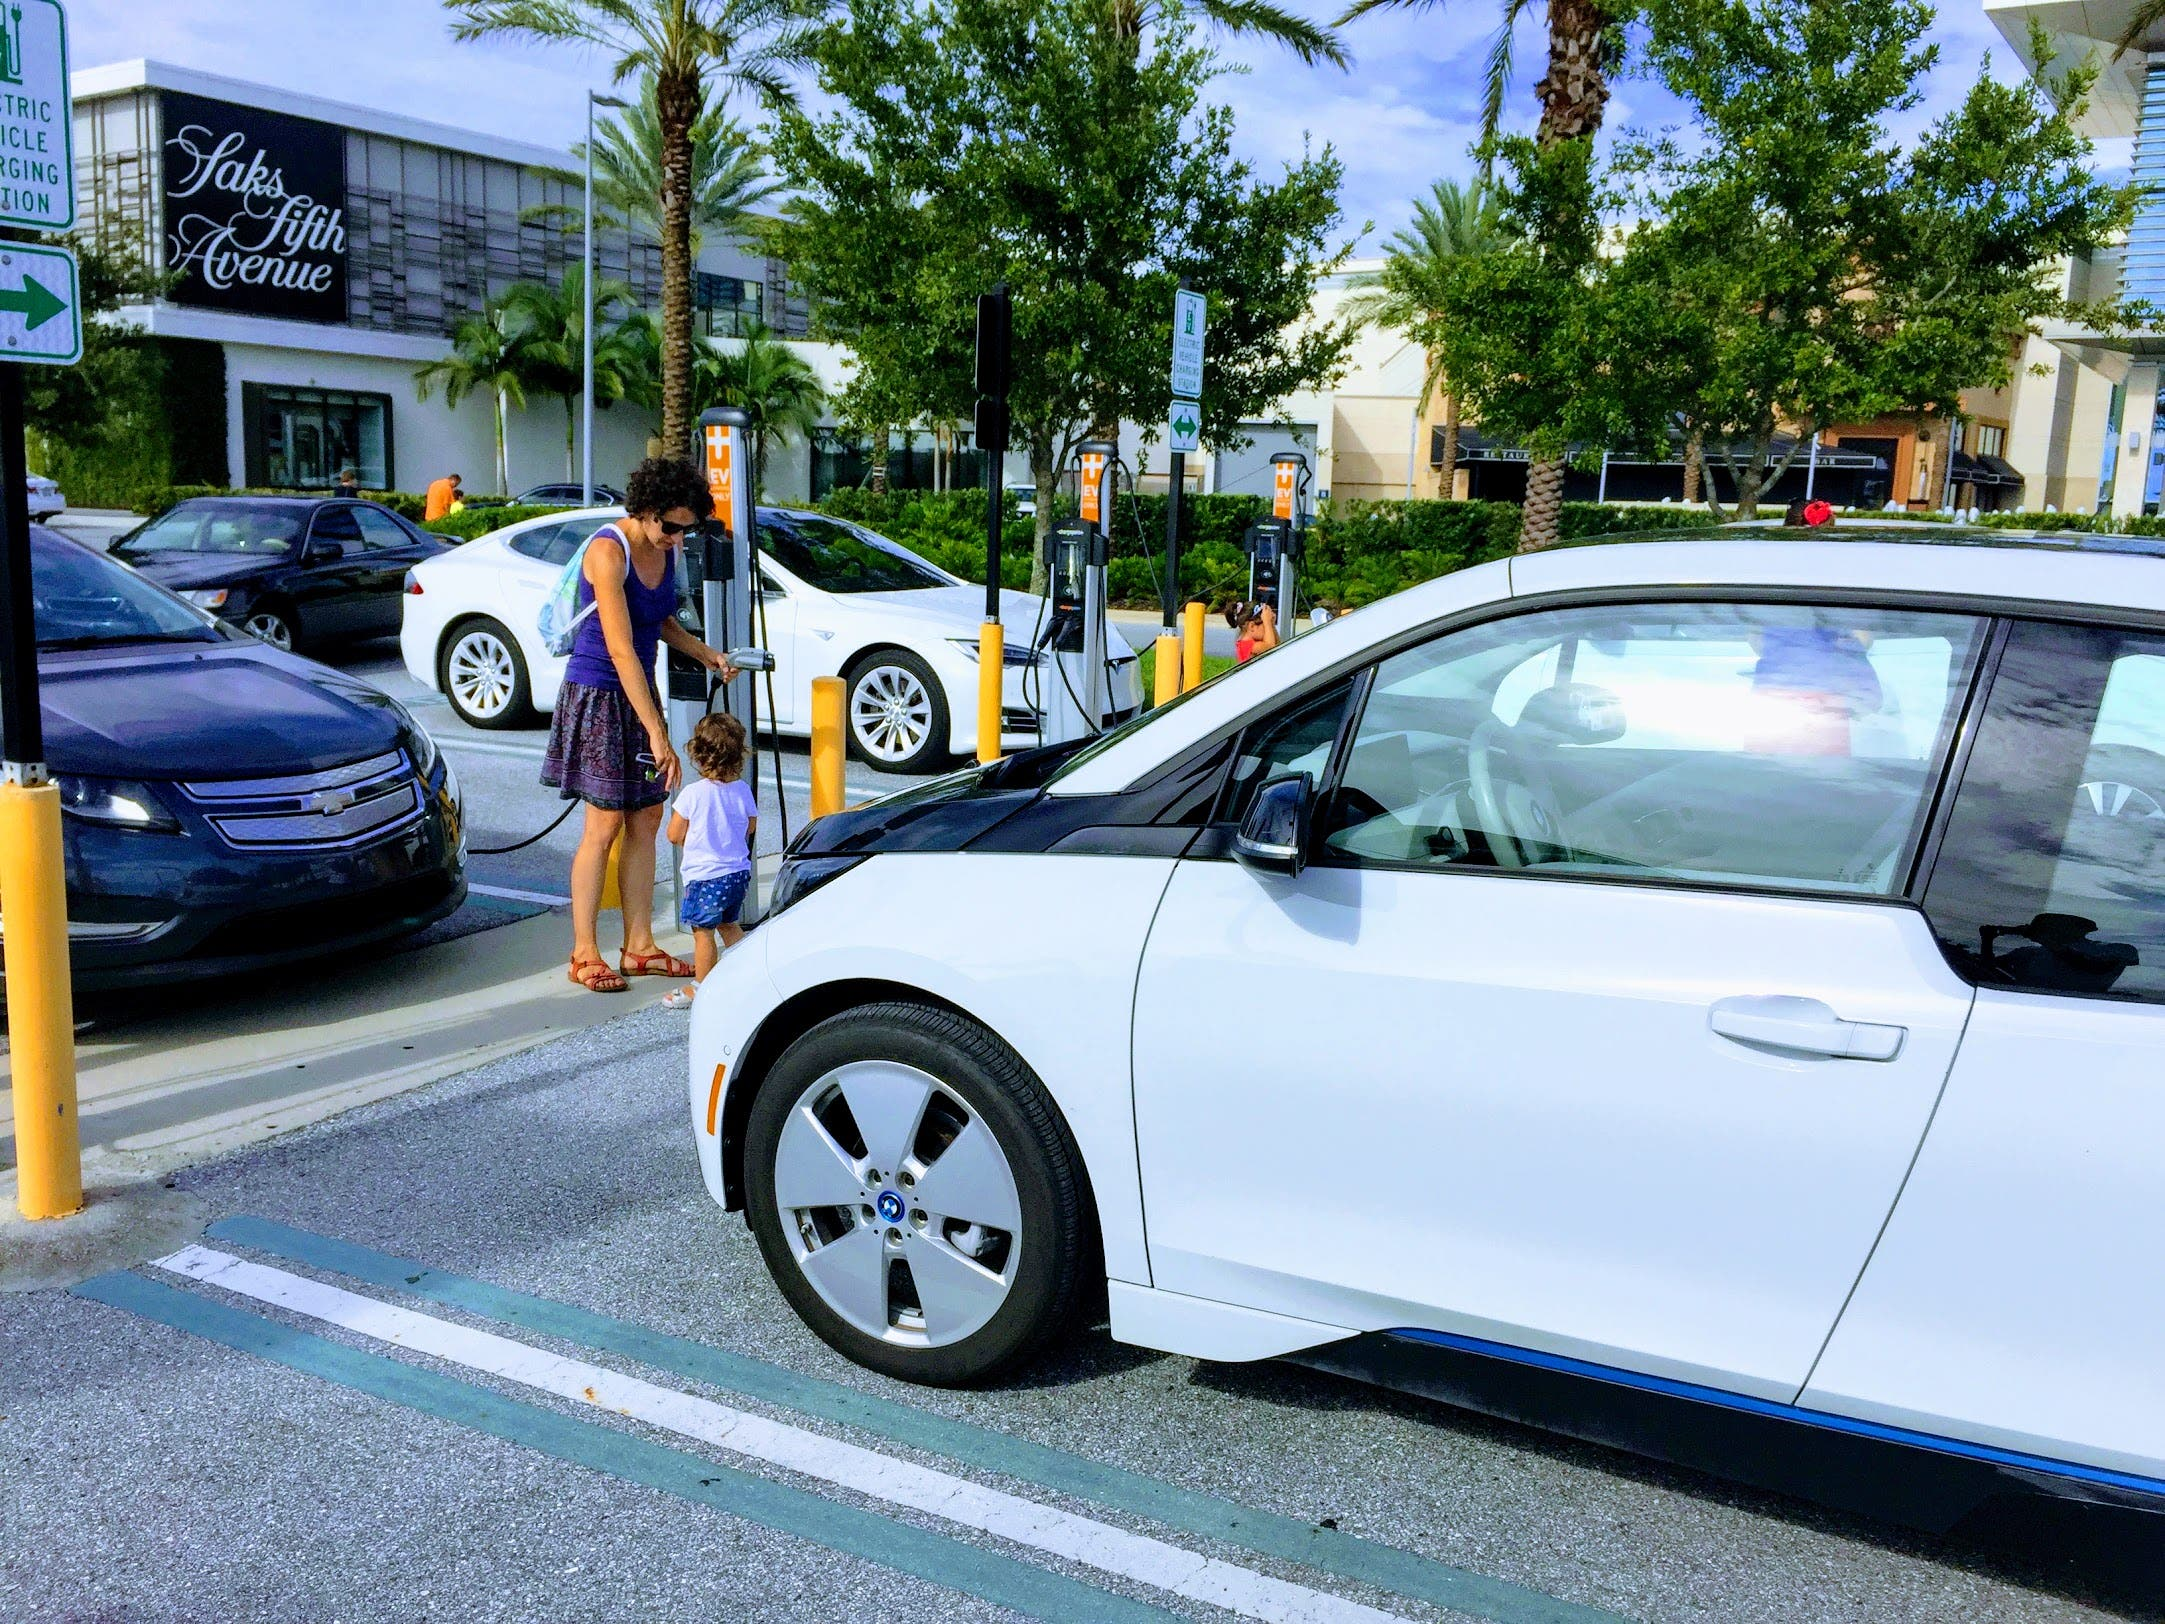 Bmw I3 Tesla Model S And Chevy Volt Charging In Florida Image Credit Cleantechnica